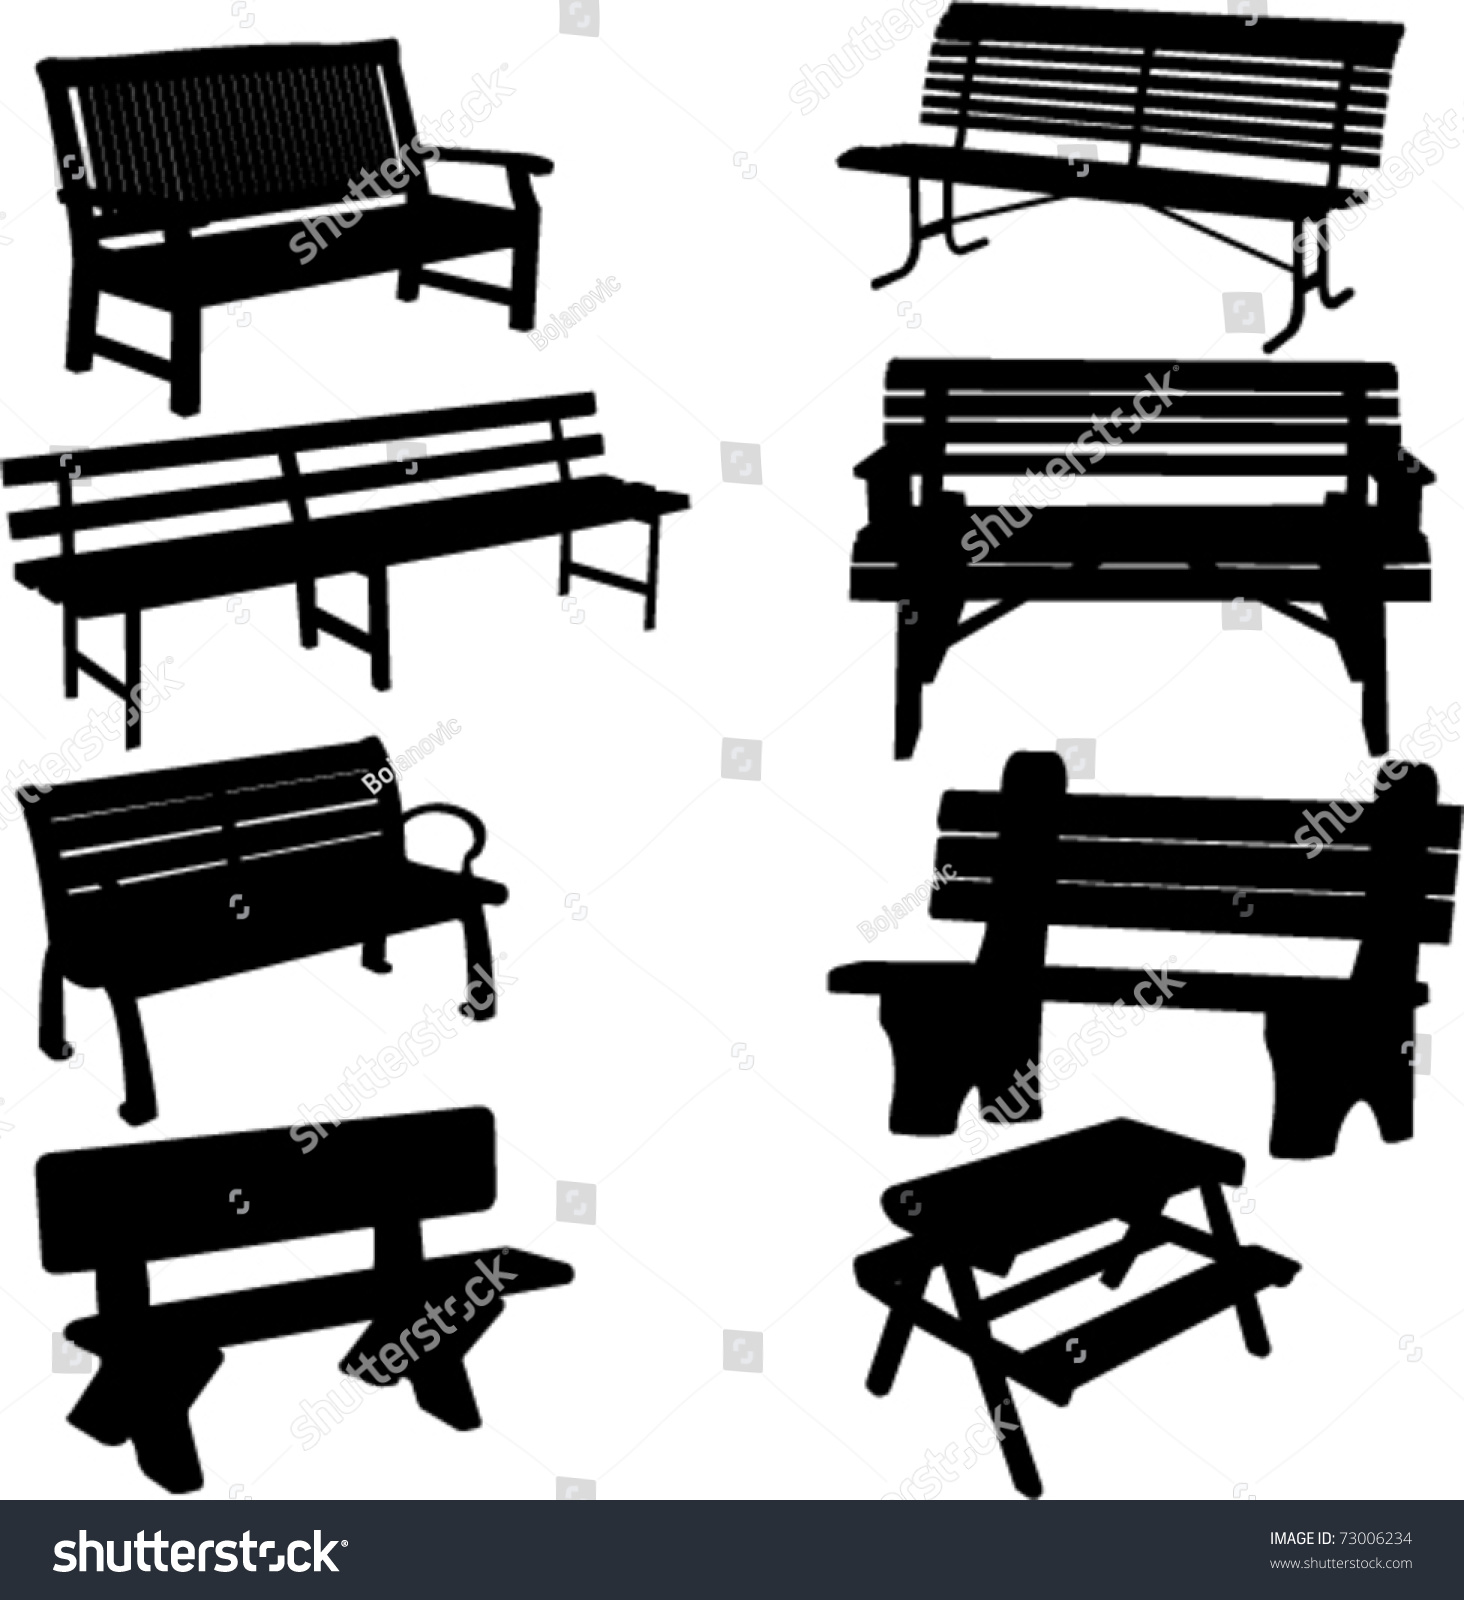 Royalty-free Bench silhouette 2 - vector #73006234 Stock Photo ... for Bench Silhouette Side  153tgx